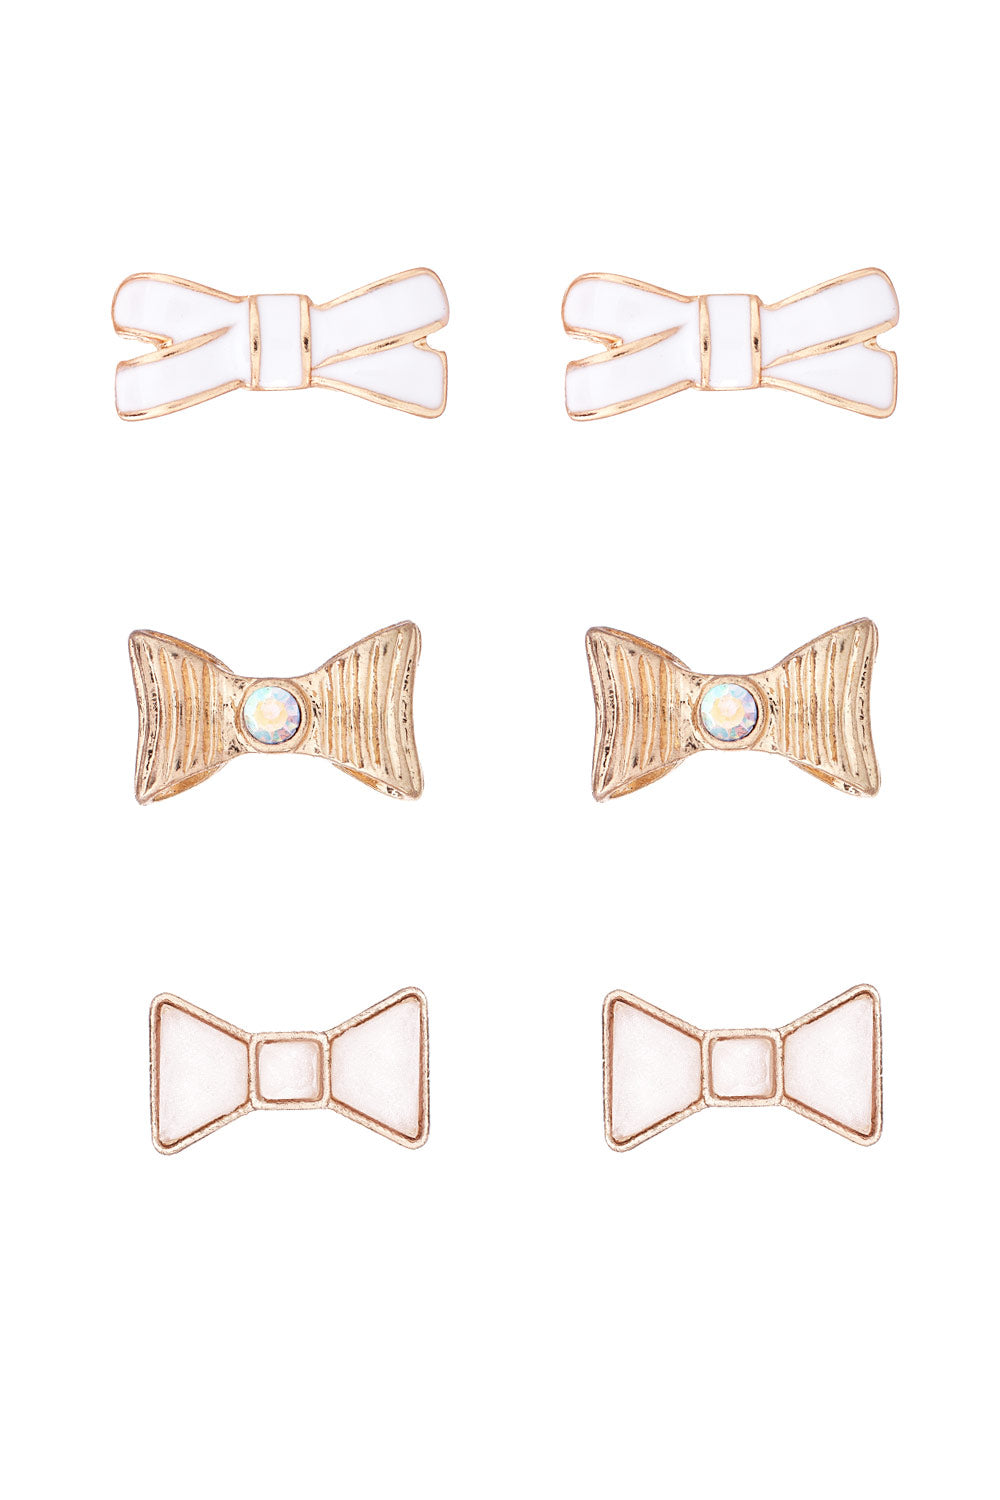 Type 1 Gold Bows Earring Set